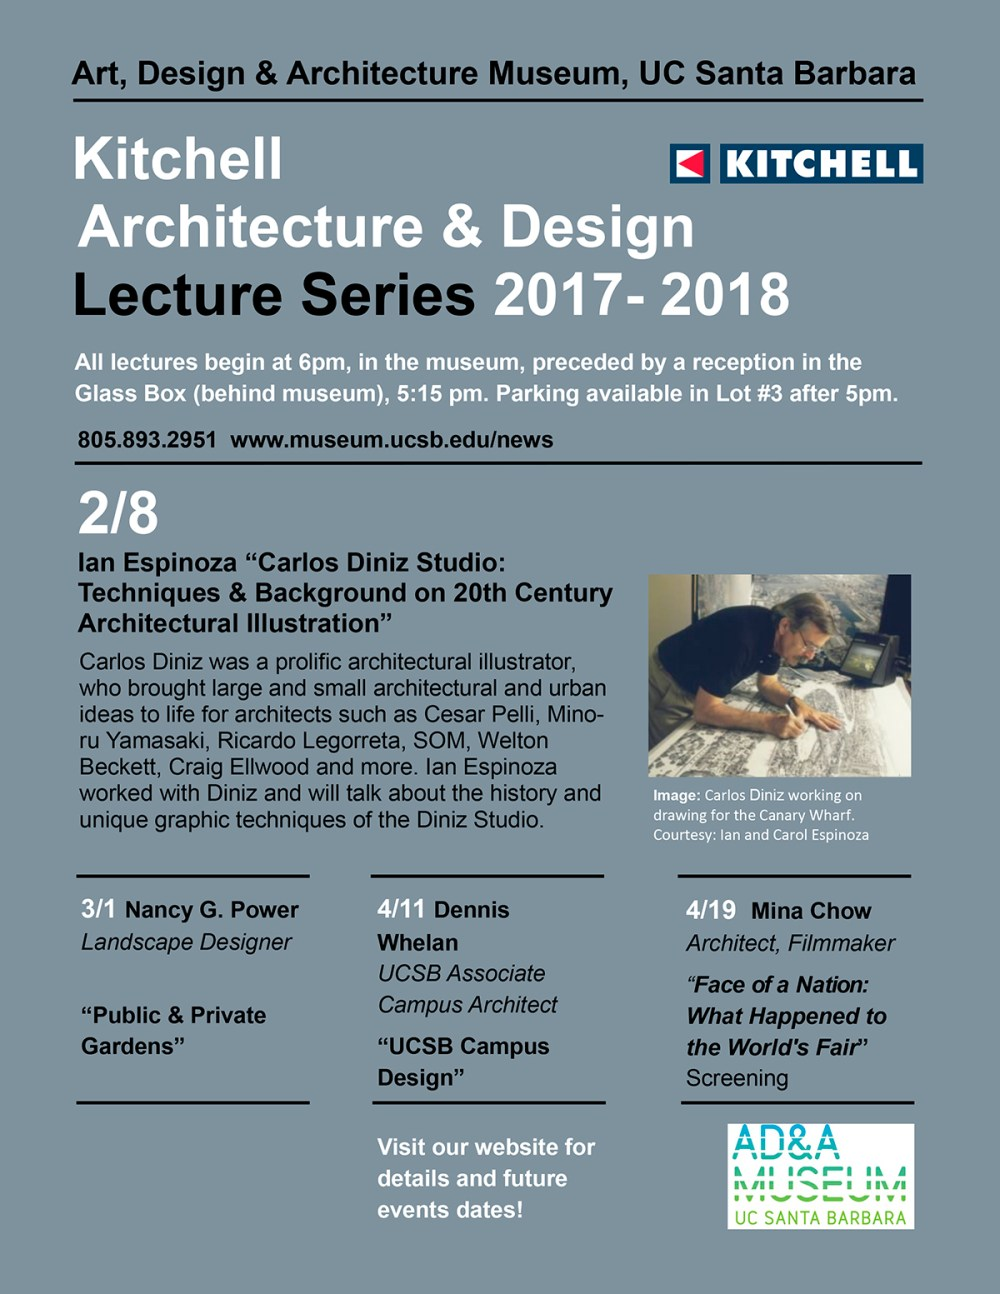 Kitchell Architecture & Design Lecture Series - Ian Espinoza